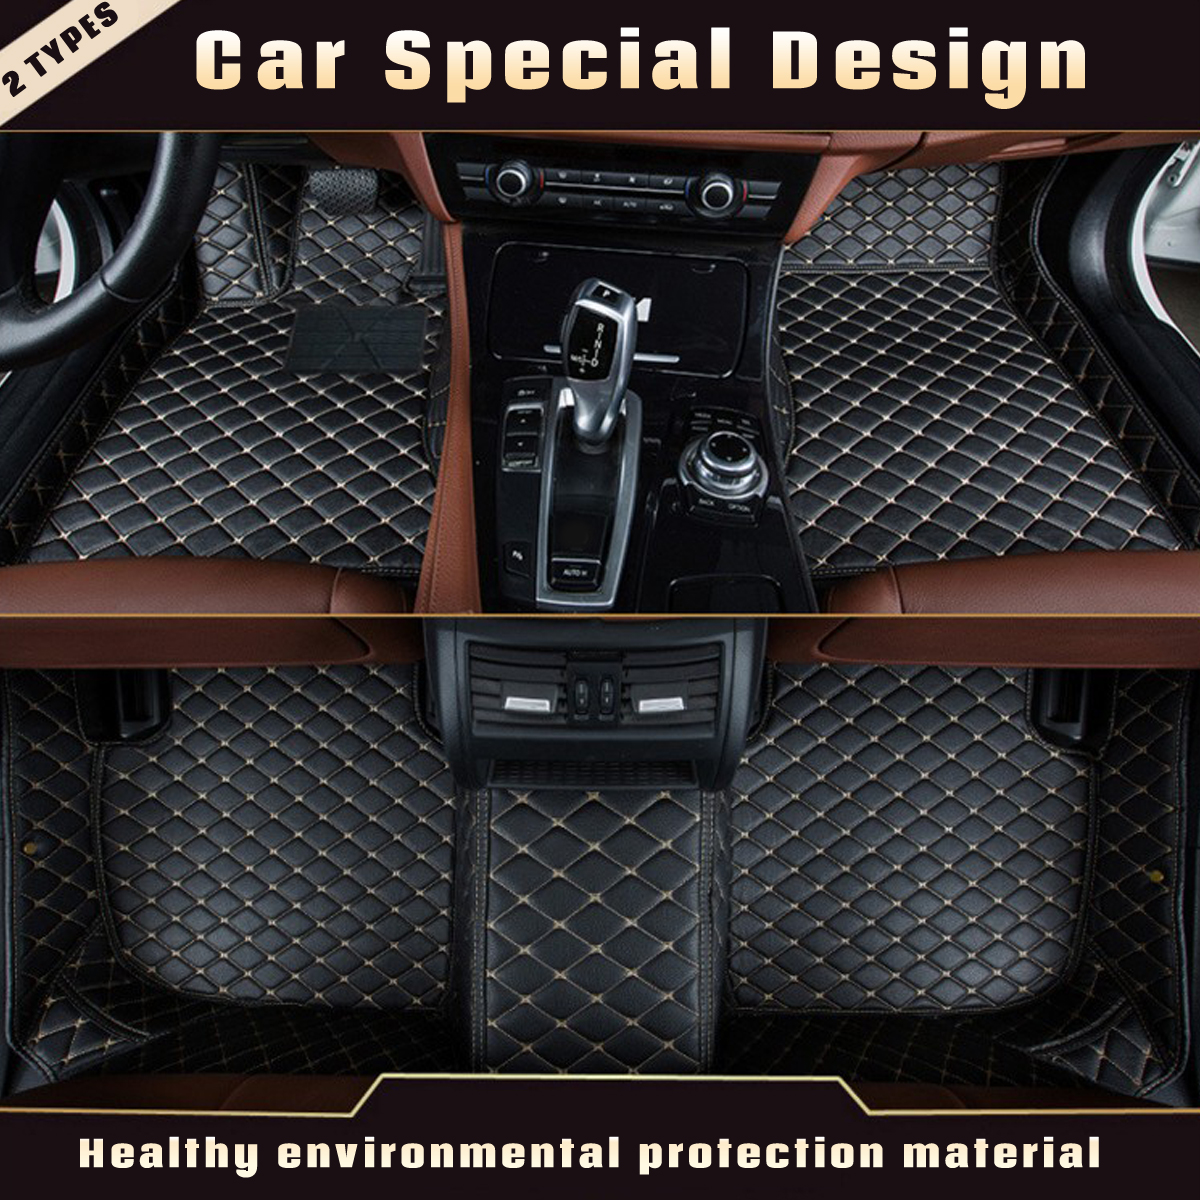 Autoleader 1 Set Leather Anti-Slip Car Floor Mat for Mercedes for Benz A C W204 W205 E W211 W212 W213 S For Left Hand Drive for mercedes benz c class w204 2008 2009 2010 2011 2012 2013 right left hand drive black front rear floor mat carpets pad cover